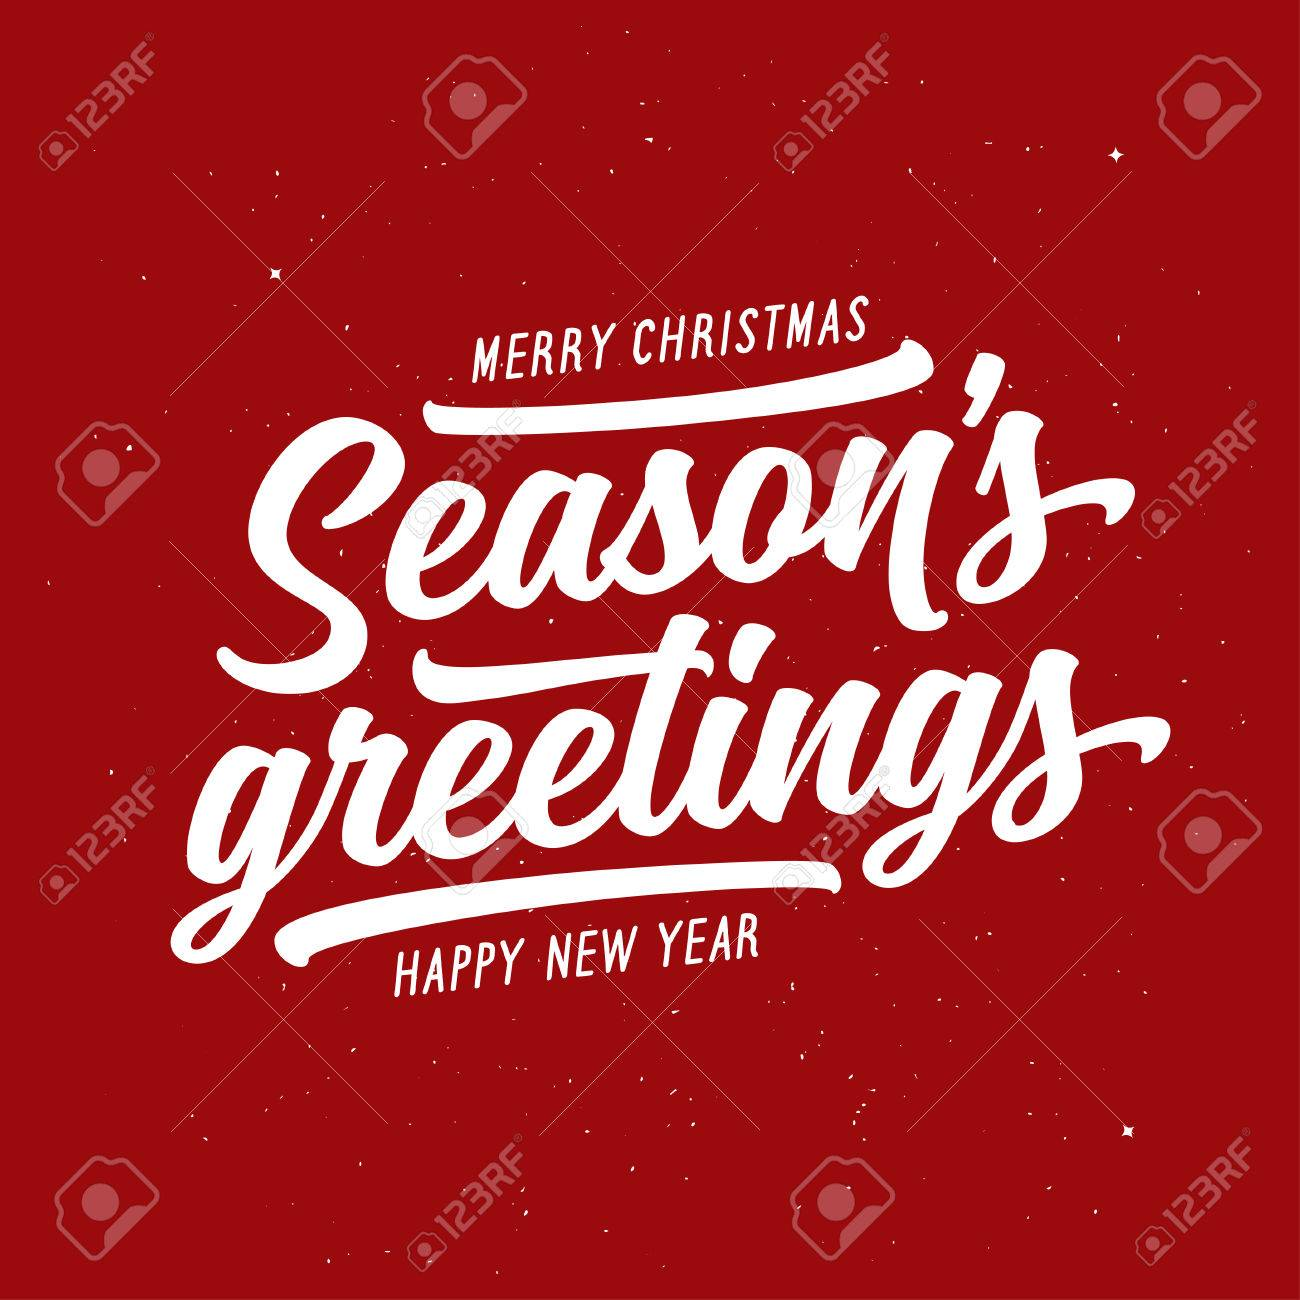 Season greetings typography composition decorative design element season greetings typography composition decorative design element for postcards prints posters vector kristyandbryce Choice Image